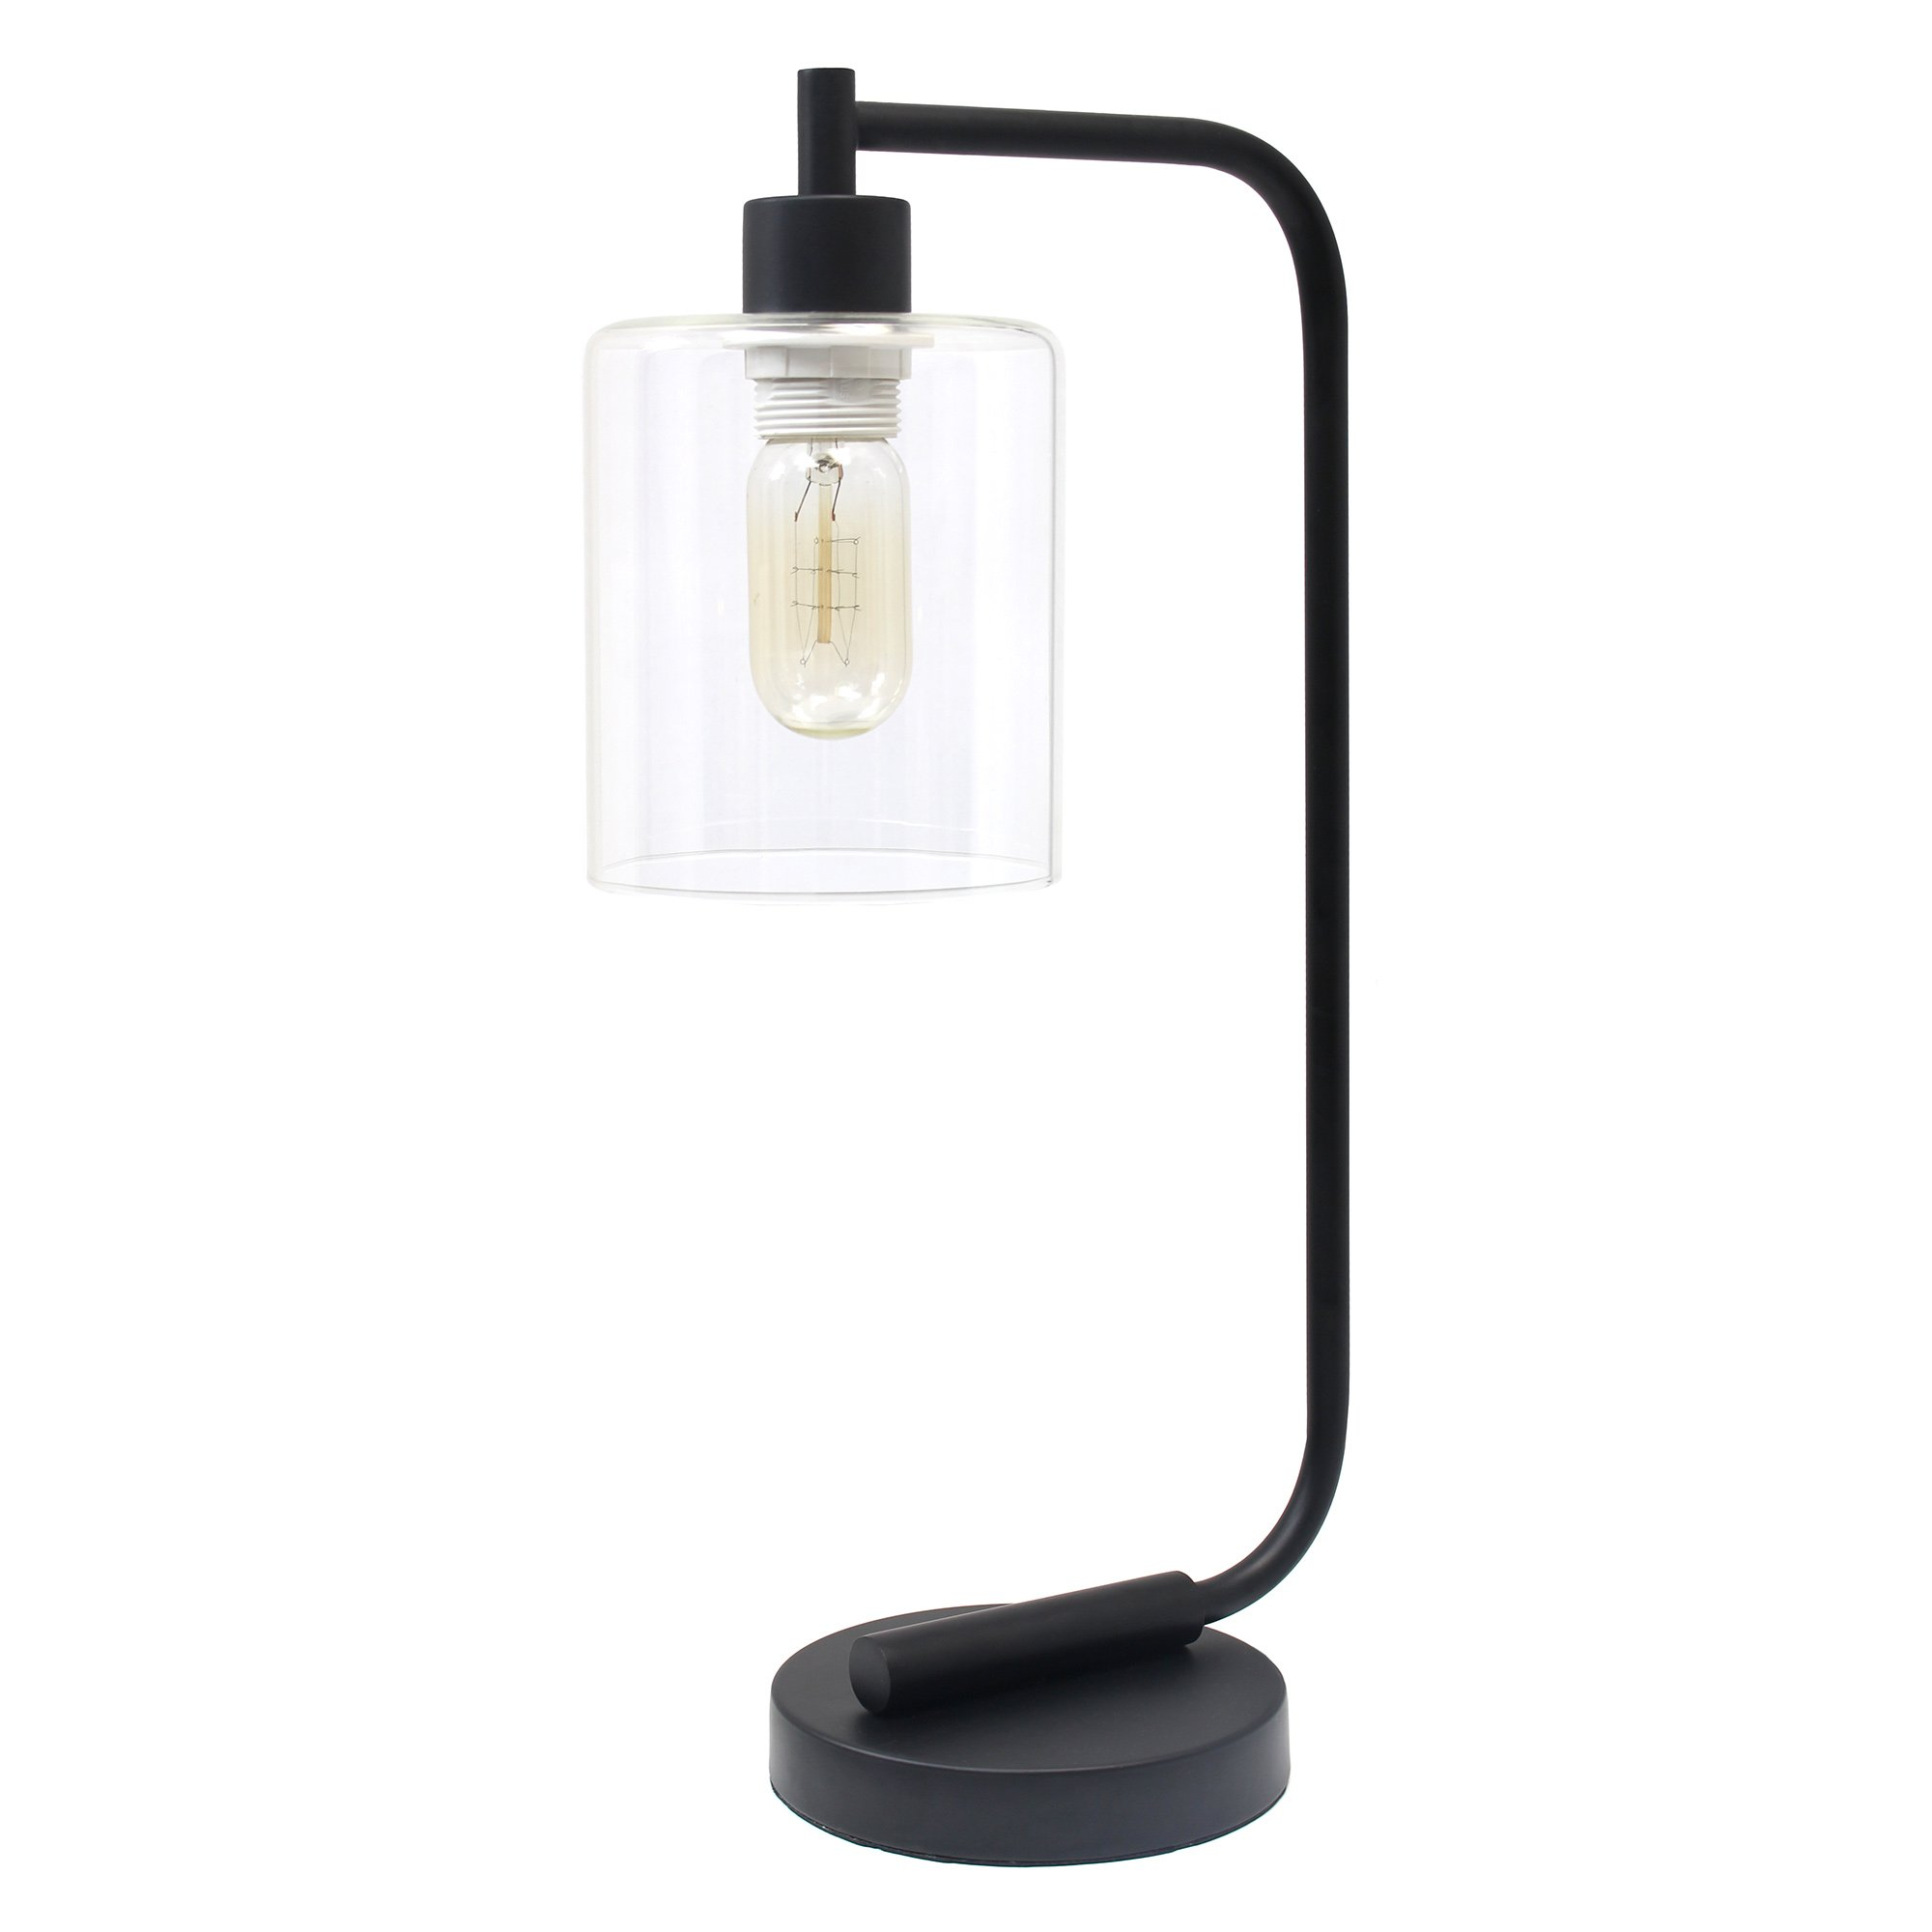 Simple Designs Home LD1036-BLK Bronson Antique Style Industrial Iron Lantern Desk Lamp with Glass Shade, Black by Simple Designs Home